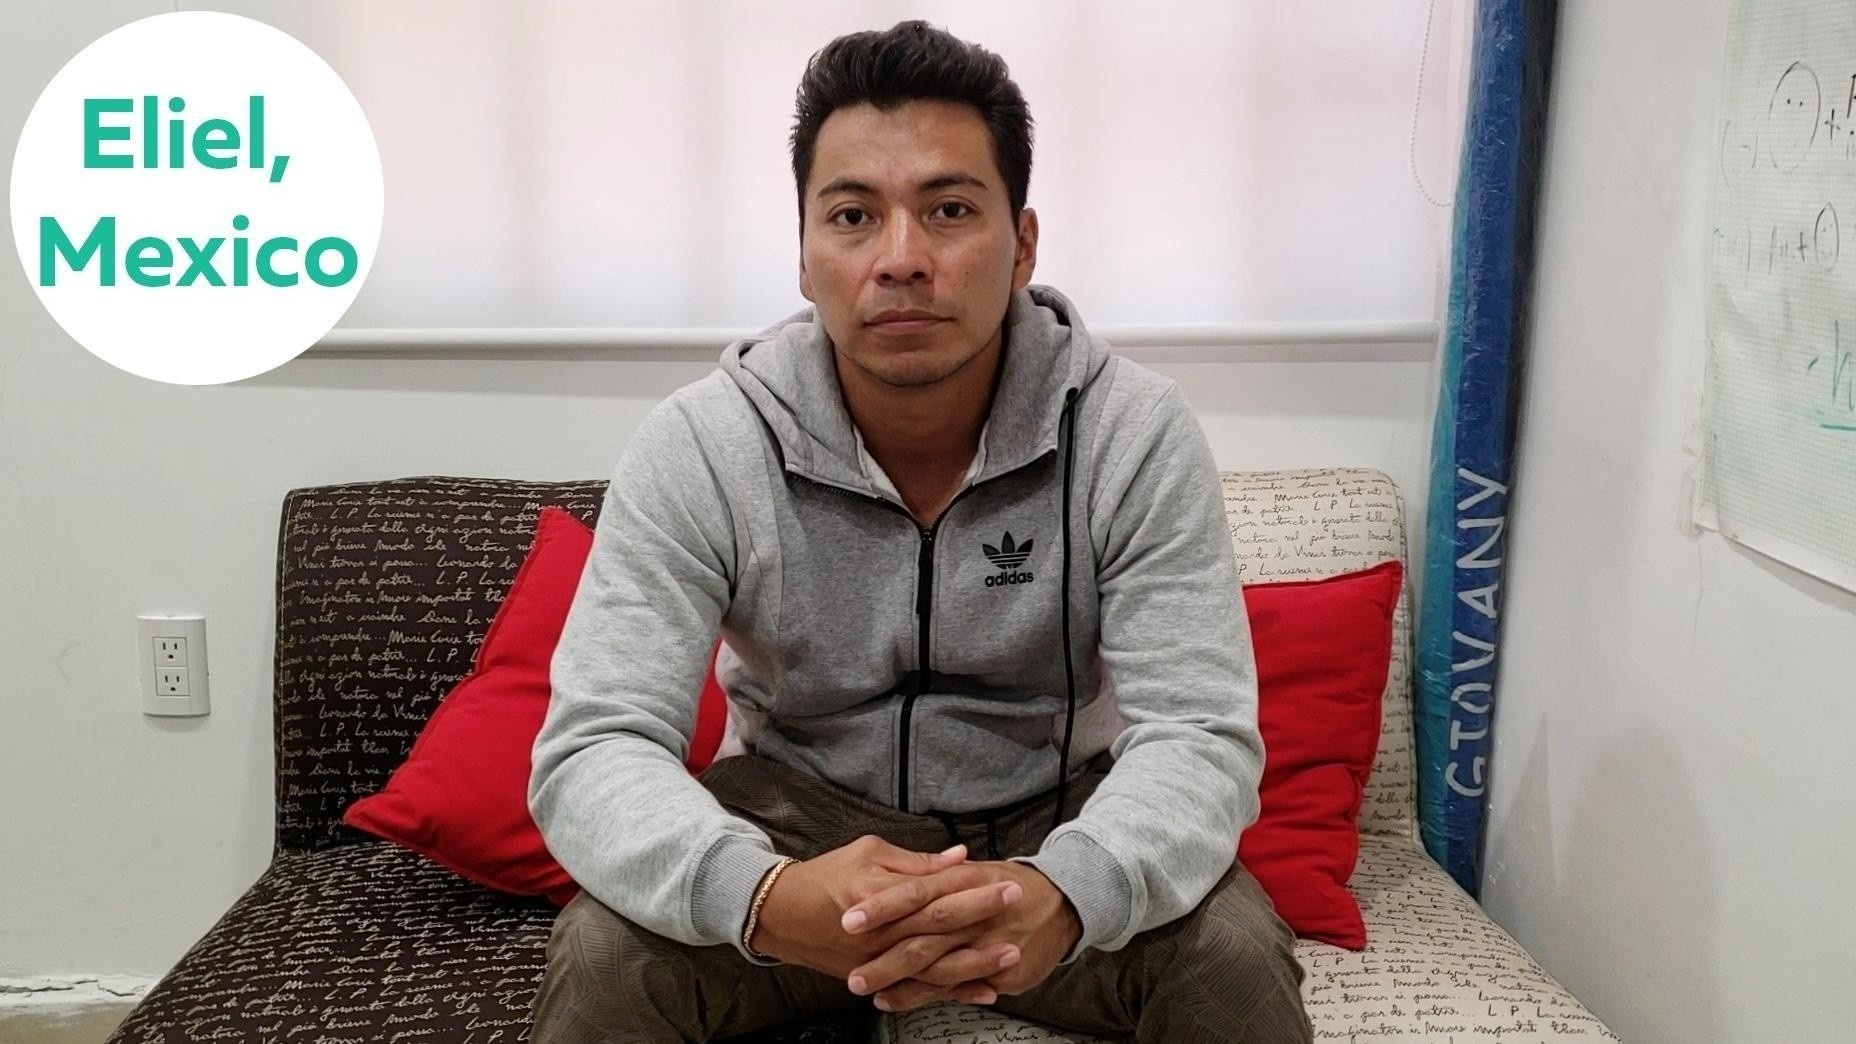 Eliel from Mexico shares his success story after joining the English-Everyday speaking course